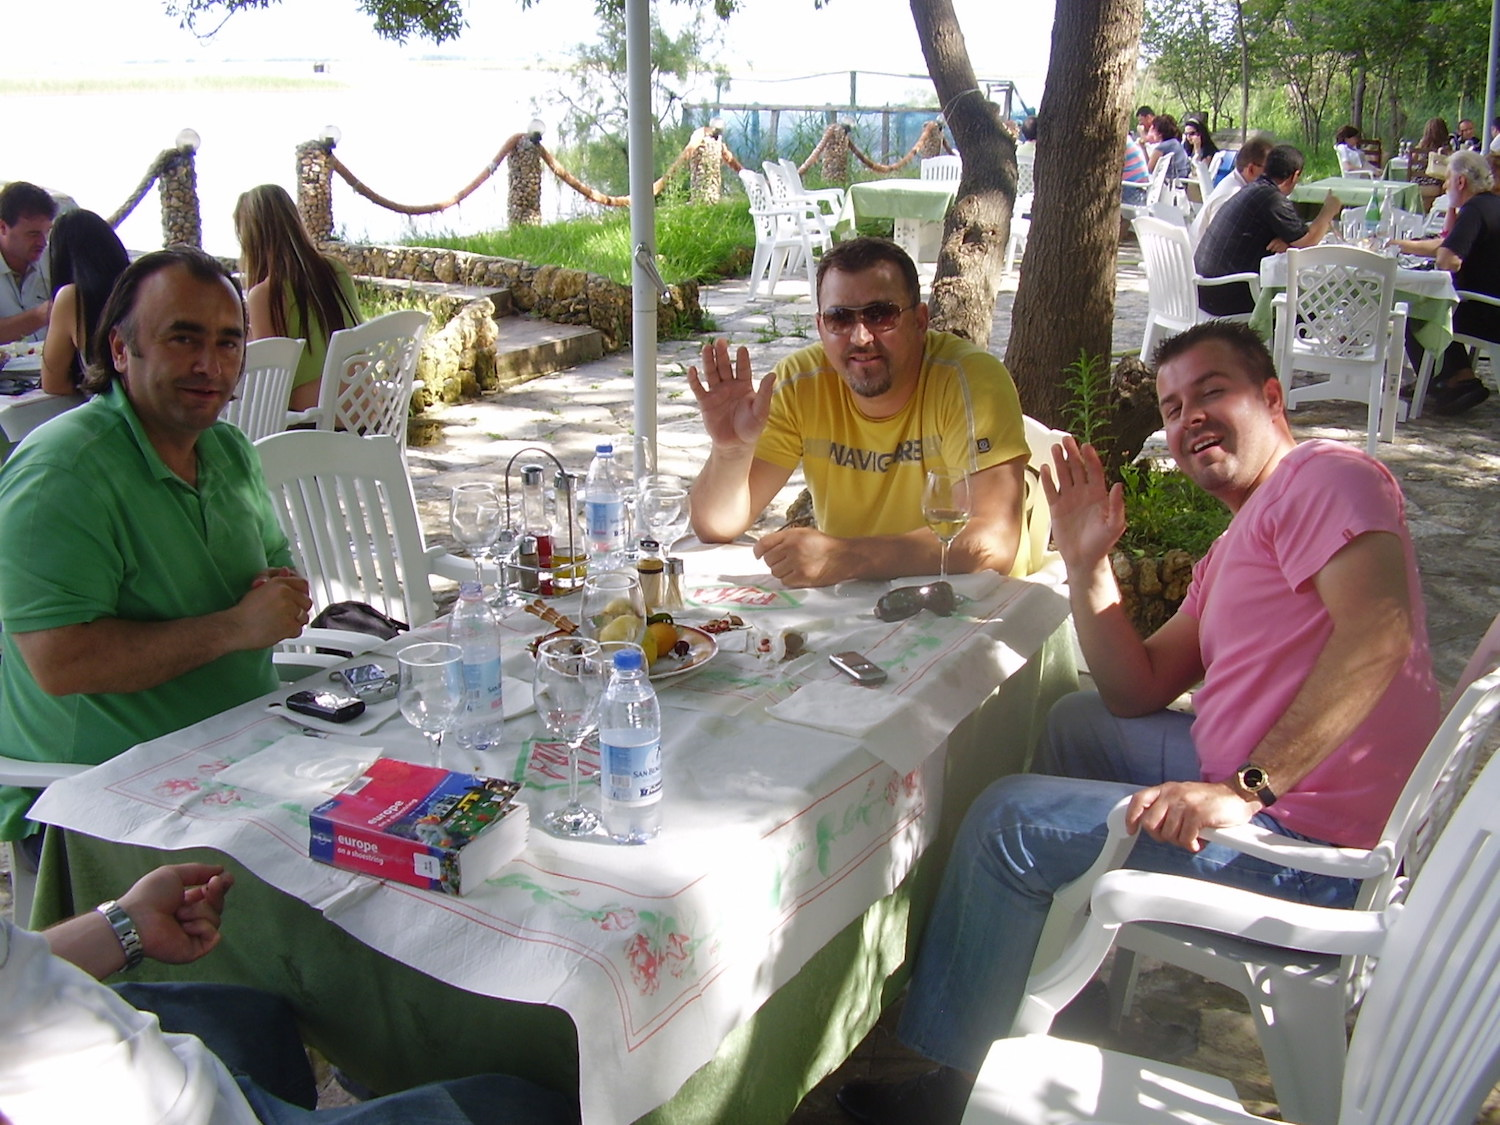 """Pic: From left, """"Arber"""", """"Zamir"""" and """"Rinor"""" - Lunch by the lake. One thing I didn't notice at the time is that they all like brightly coloured shirts"""